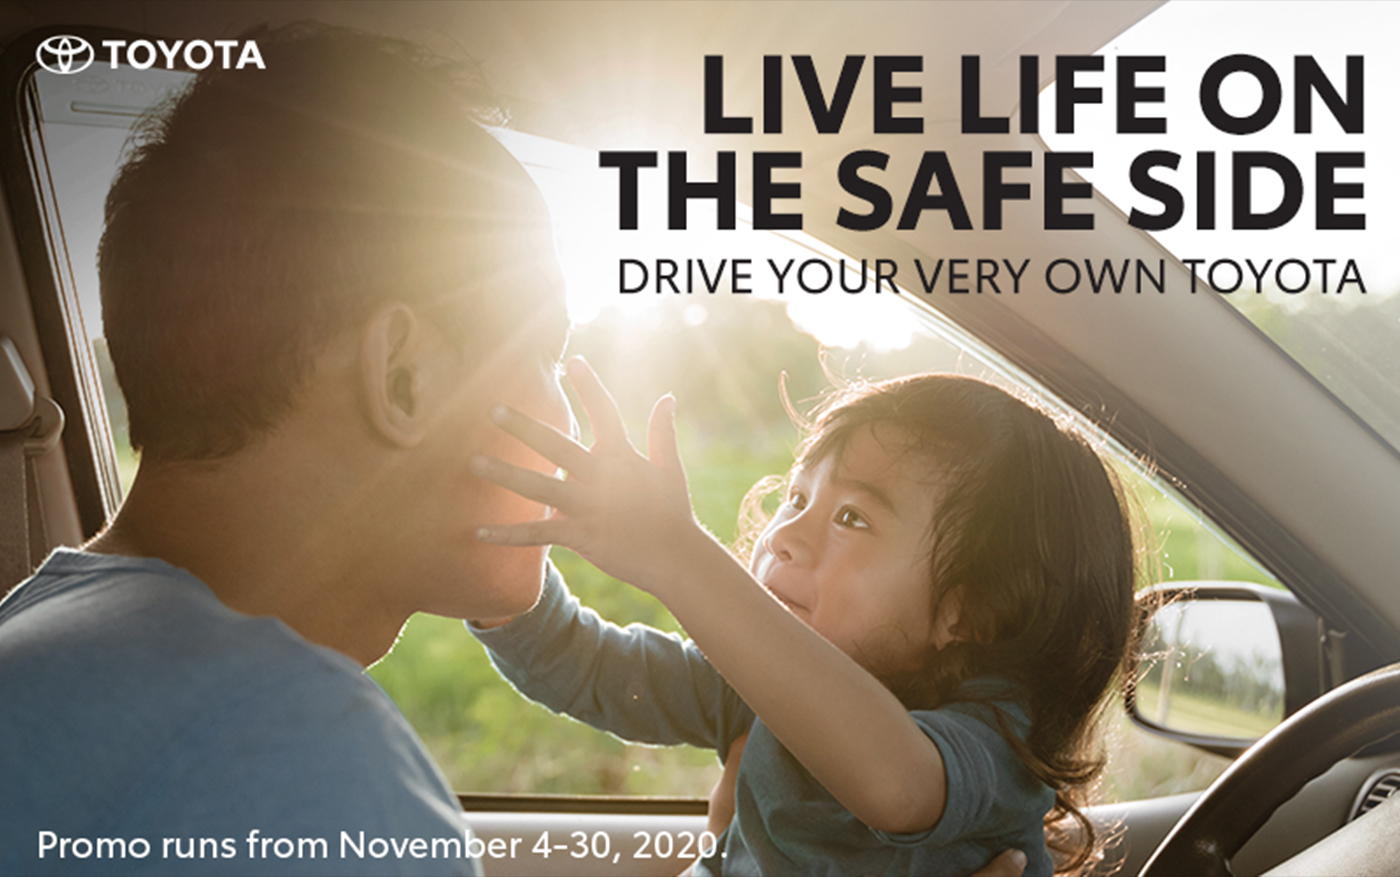 Toyota deals help you Live Life on the Safe Side and offer special support for Toyota customers